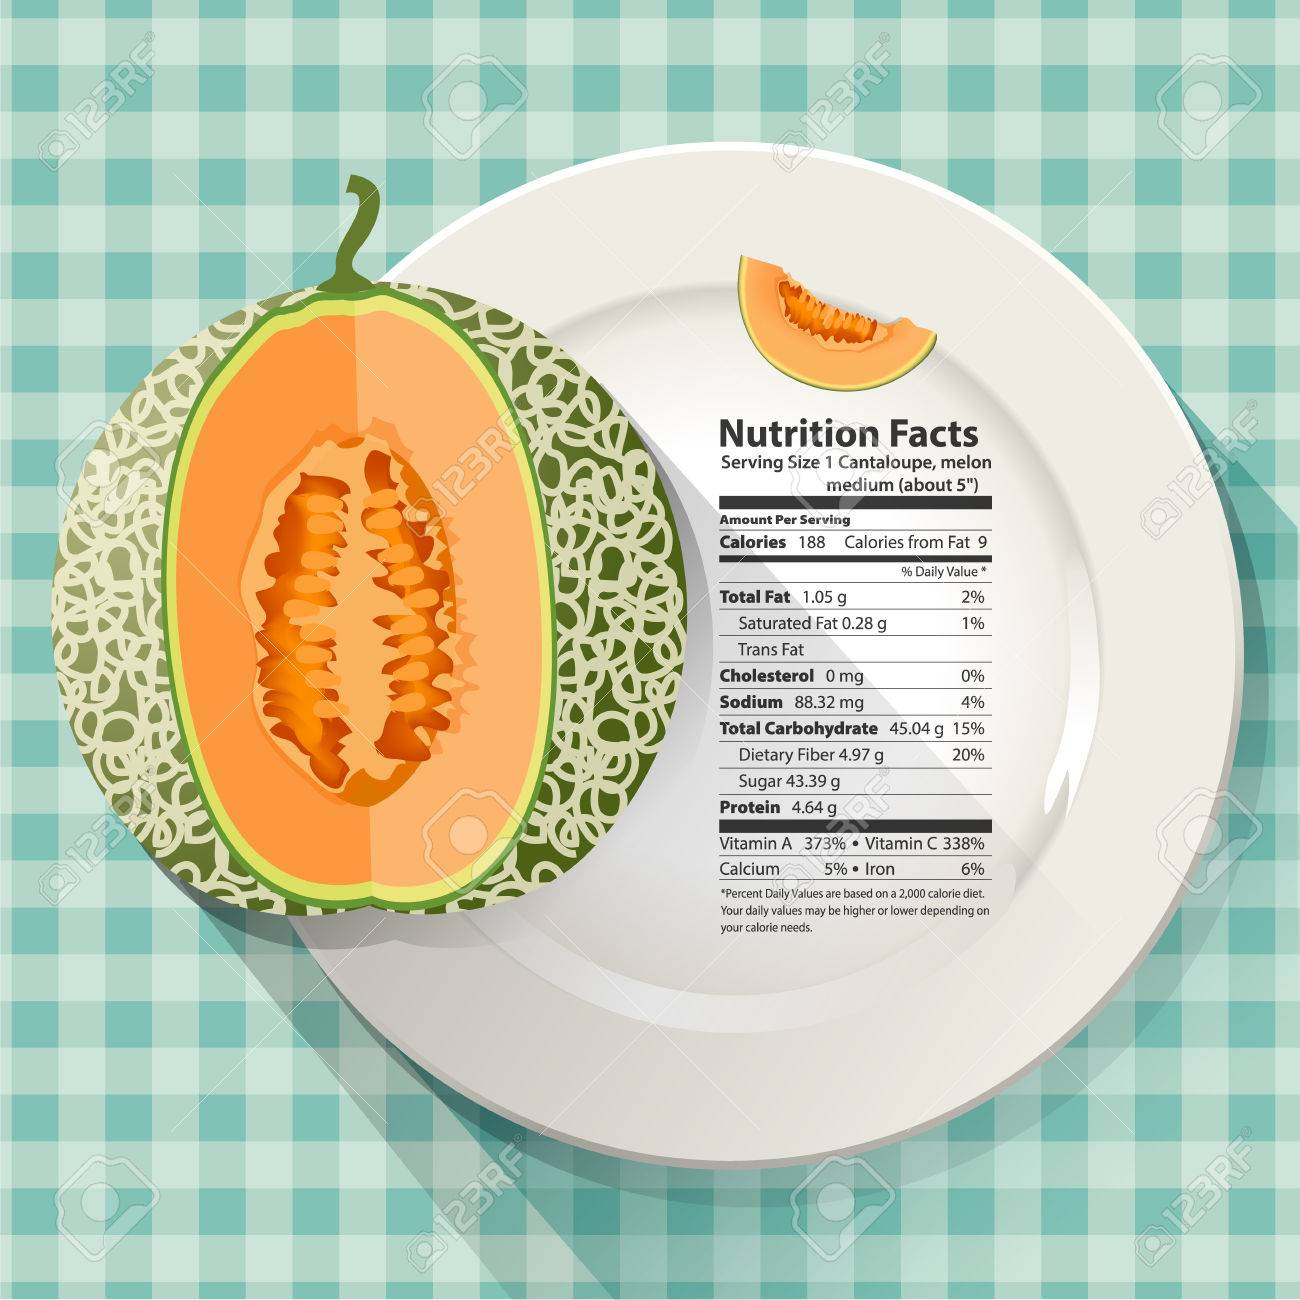 Vector Of Nutrition Facts In Cantaloupe On White Plate Royalty Free Cliparts Vectors And Stock Illustration Image 38743652 Nutrition facts cantaloupe serving size: vector of nutrition facts in cantaloupe on white plate